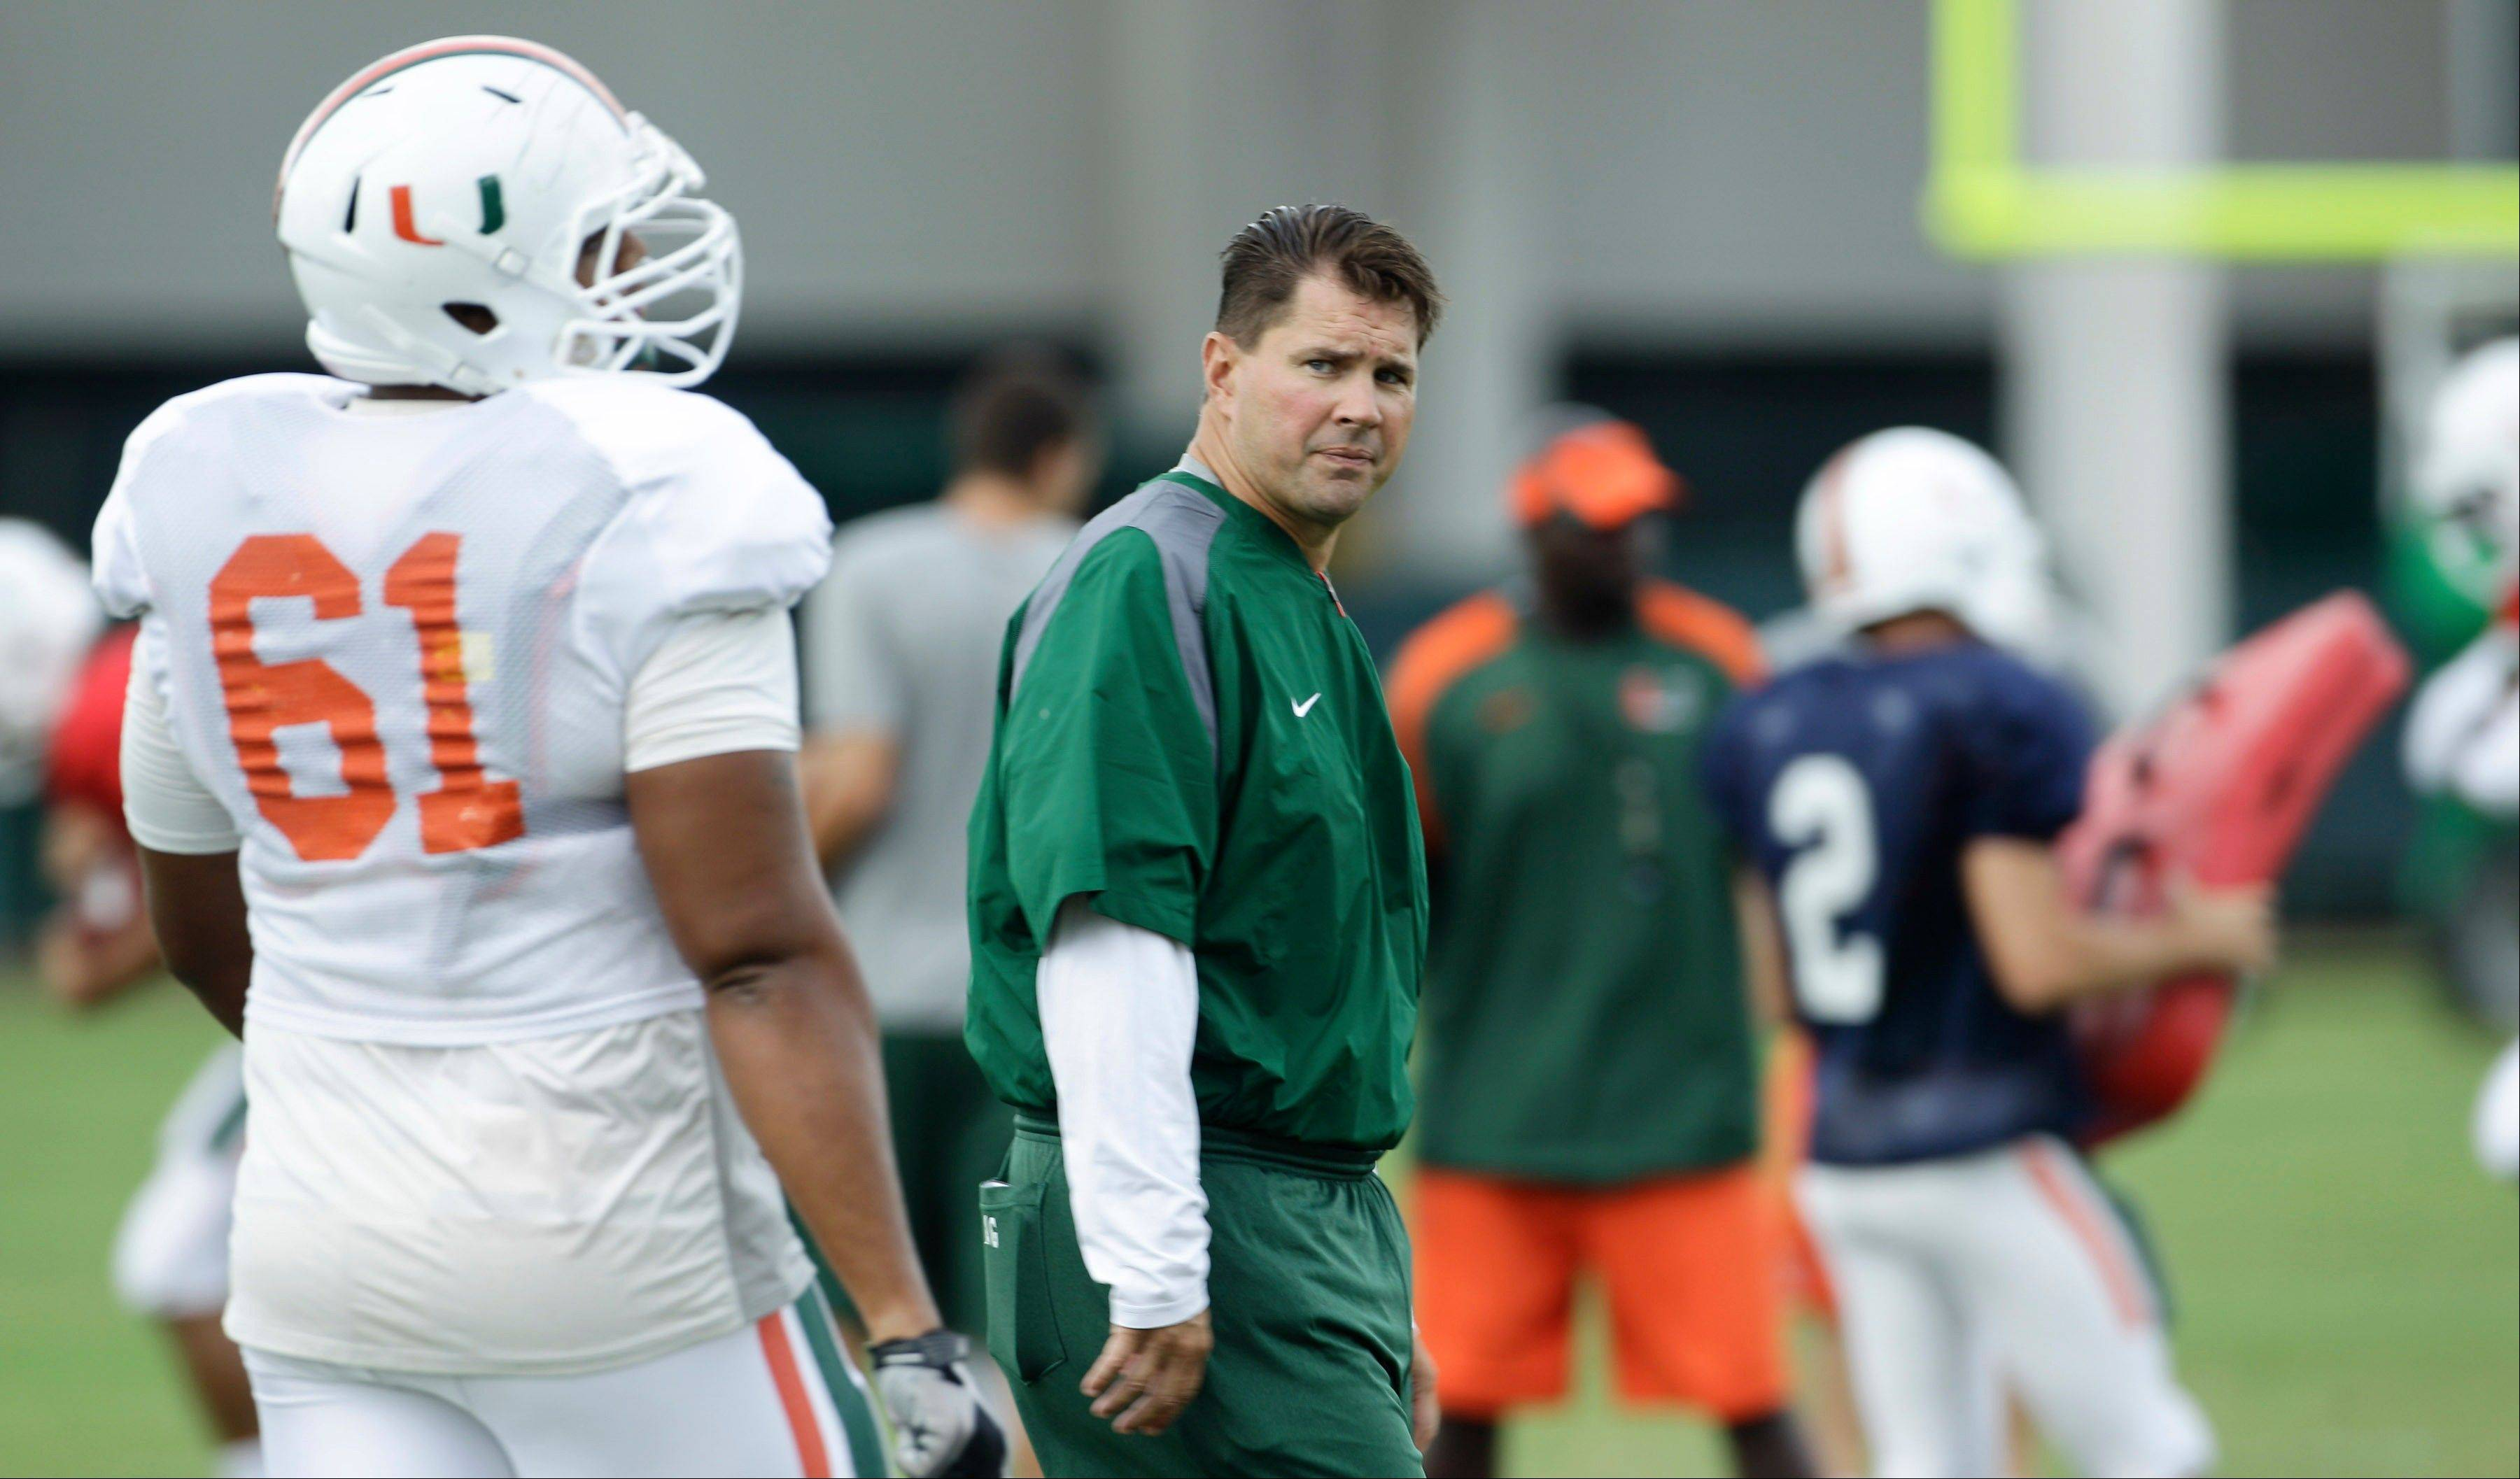 �We�ll make sure we practice enough guys because we really don�t know what the future brings,� Hurricanes coach Al Golden said. �Hopefully we�ll find out pretty quickly here in the near future if there are any penalties or suspensions, and we�ll adjust accordingly.�